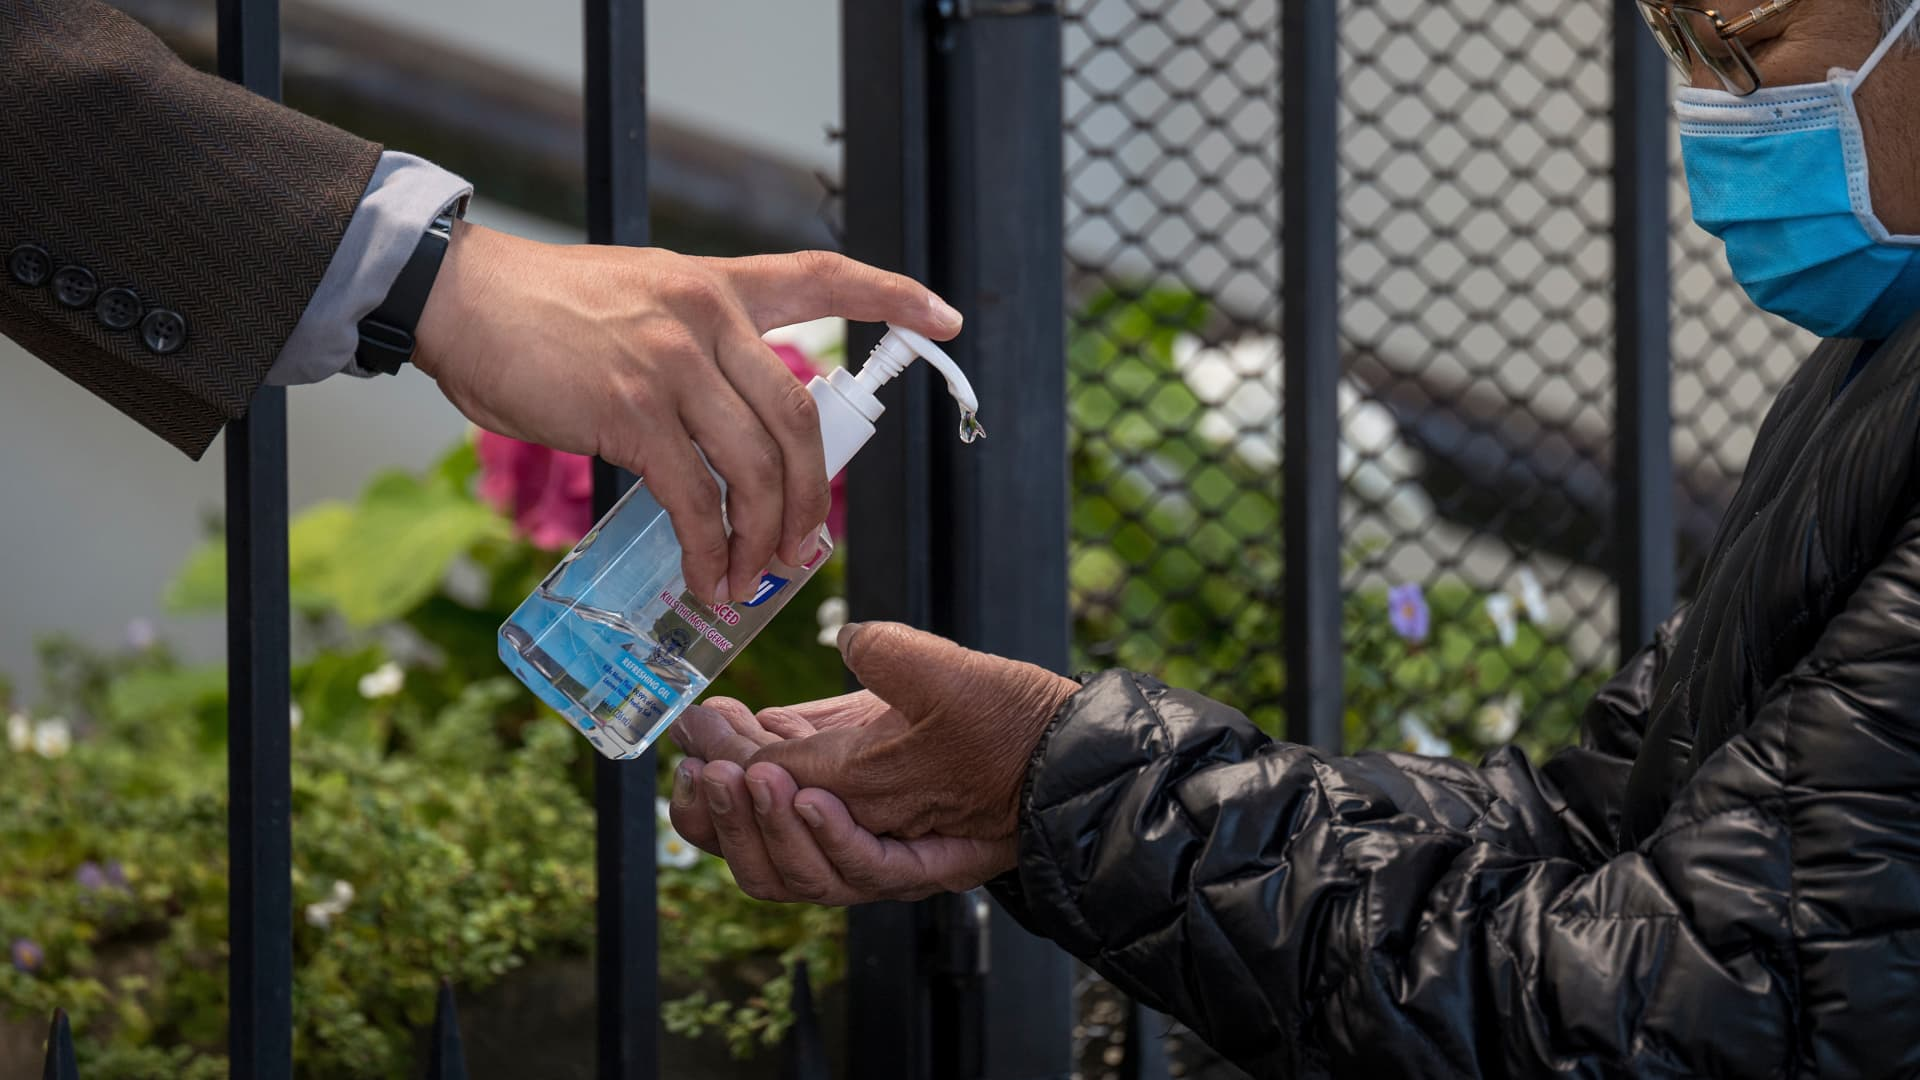 A person wearing a protective mask receives hand sanitizer while attending mass outside the National Shrine of St. Francis of Assisi Catholic Church in San Francisco, California, on Tuesday, July 14, 2020.